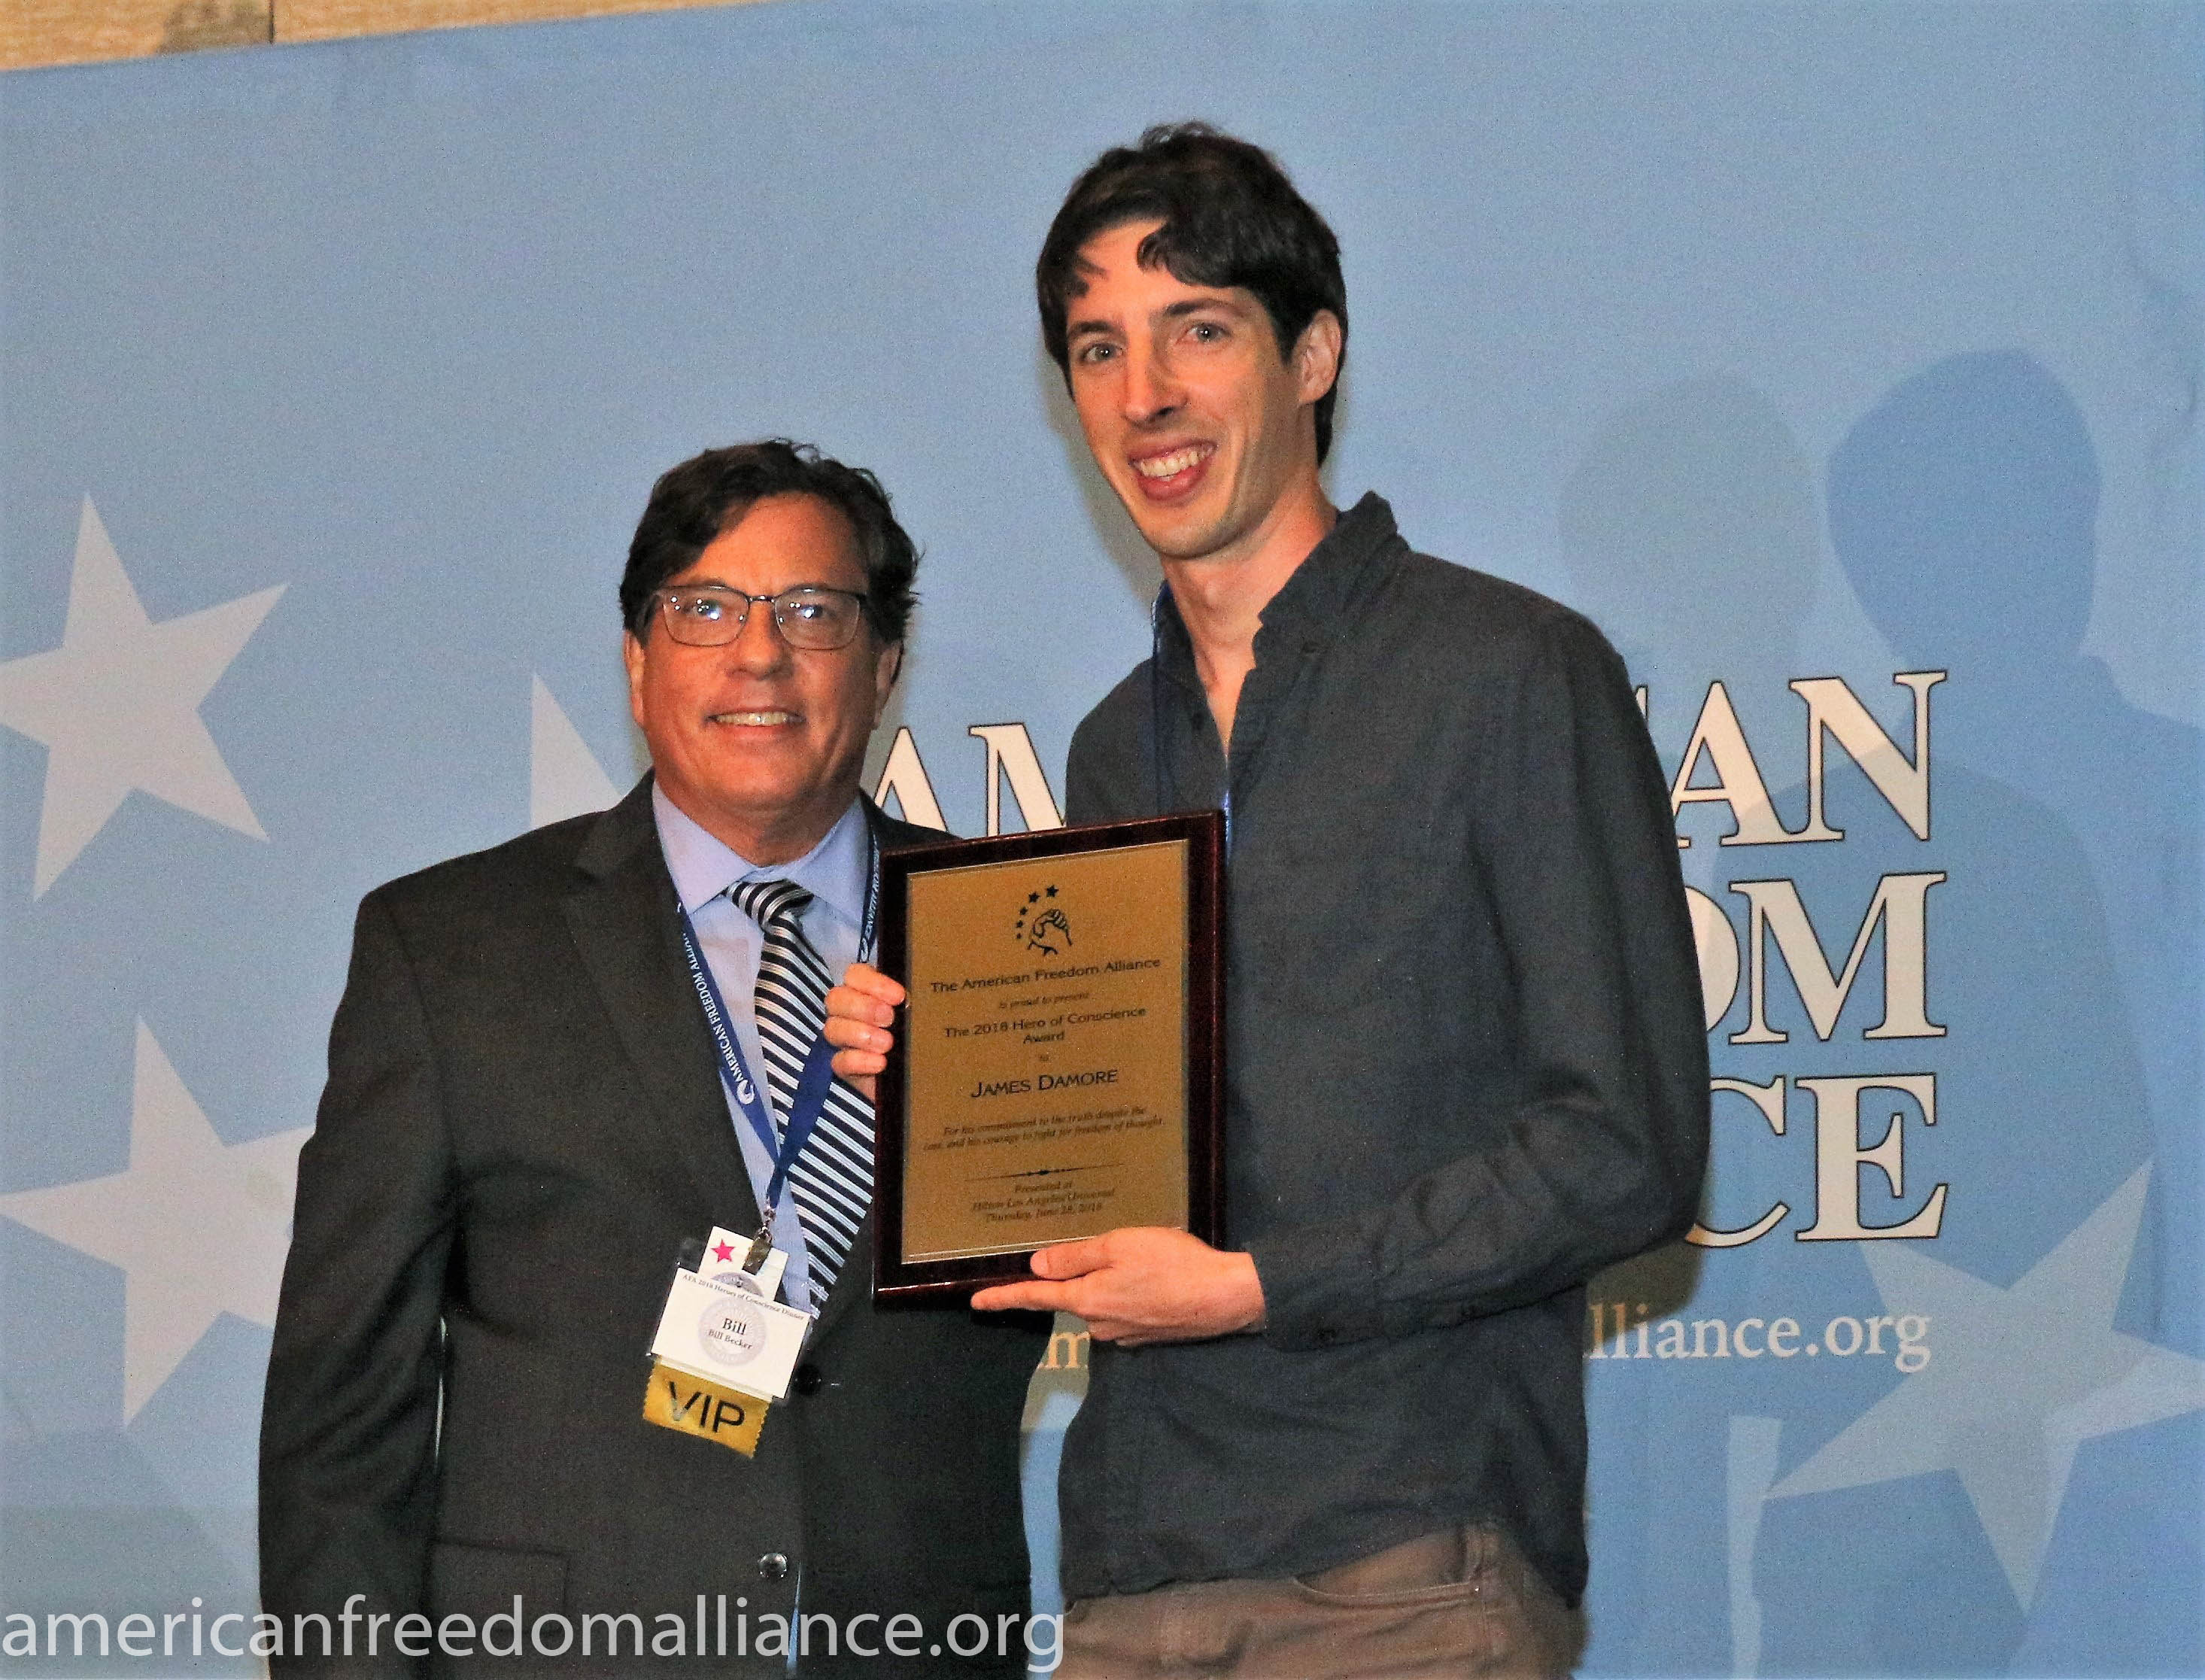 Bill Becker and James Damore with H of C Award